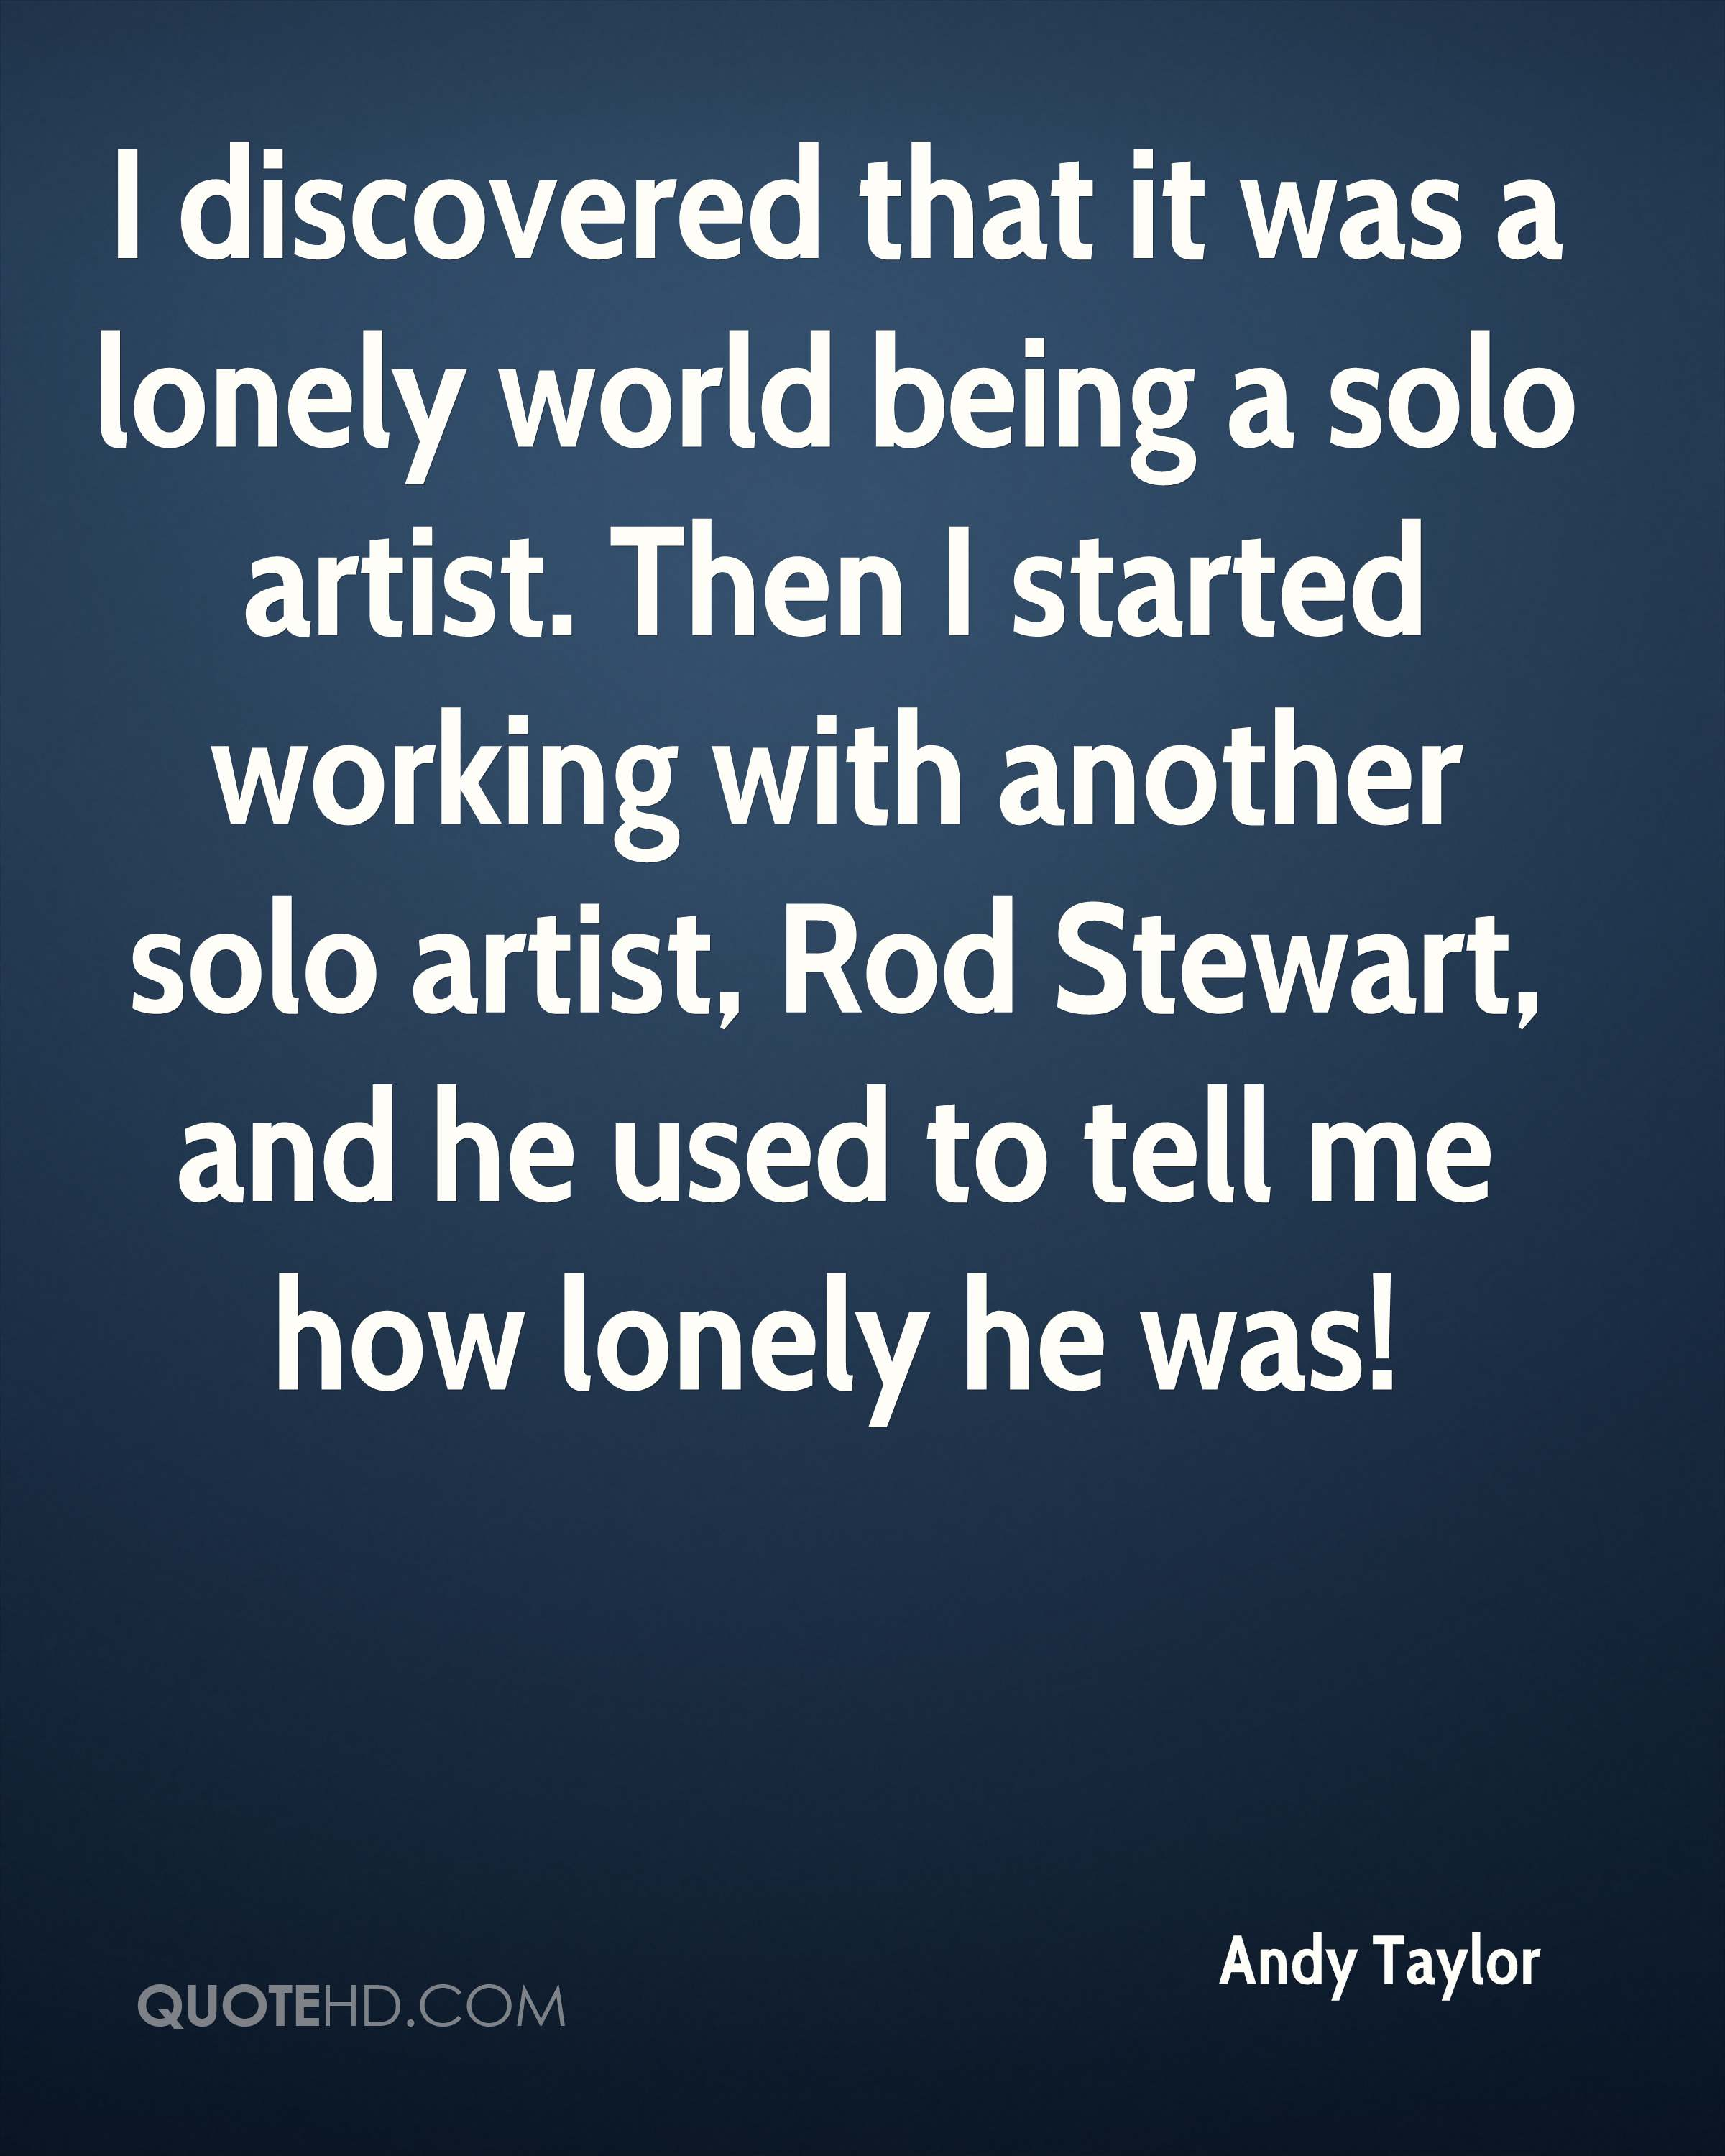 I discovered that it was a lonely world being a solo artist. Then I started working with another solo artist, Rod Stewart, and he used to tell me how lonely he was!